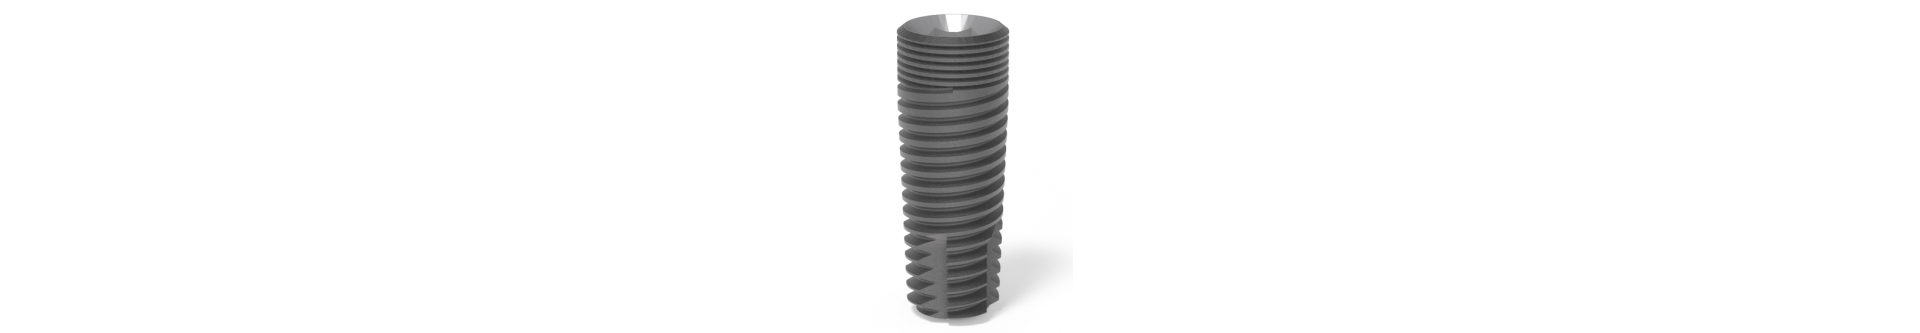 implant cylindrique